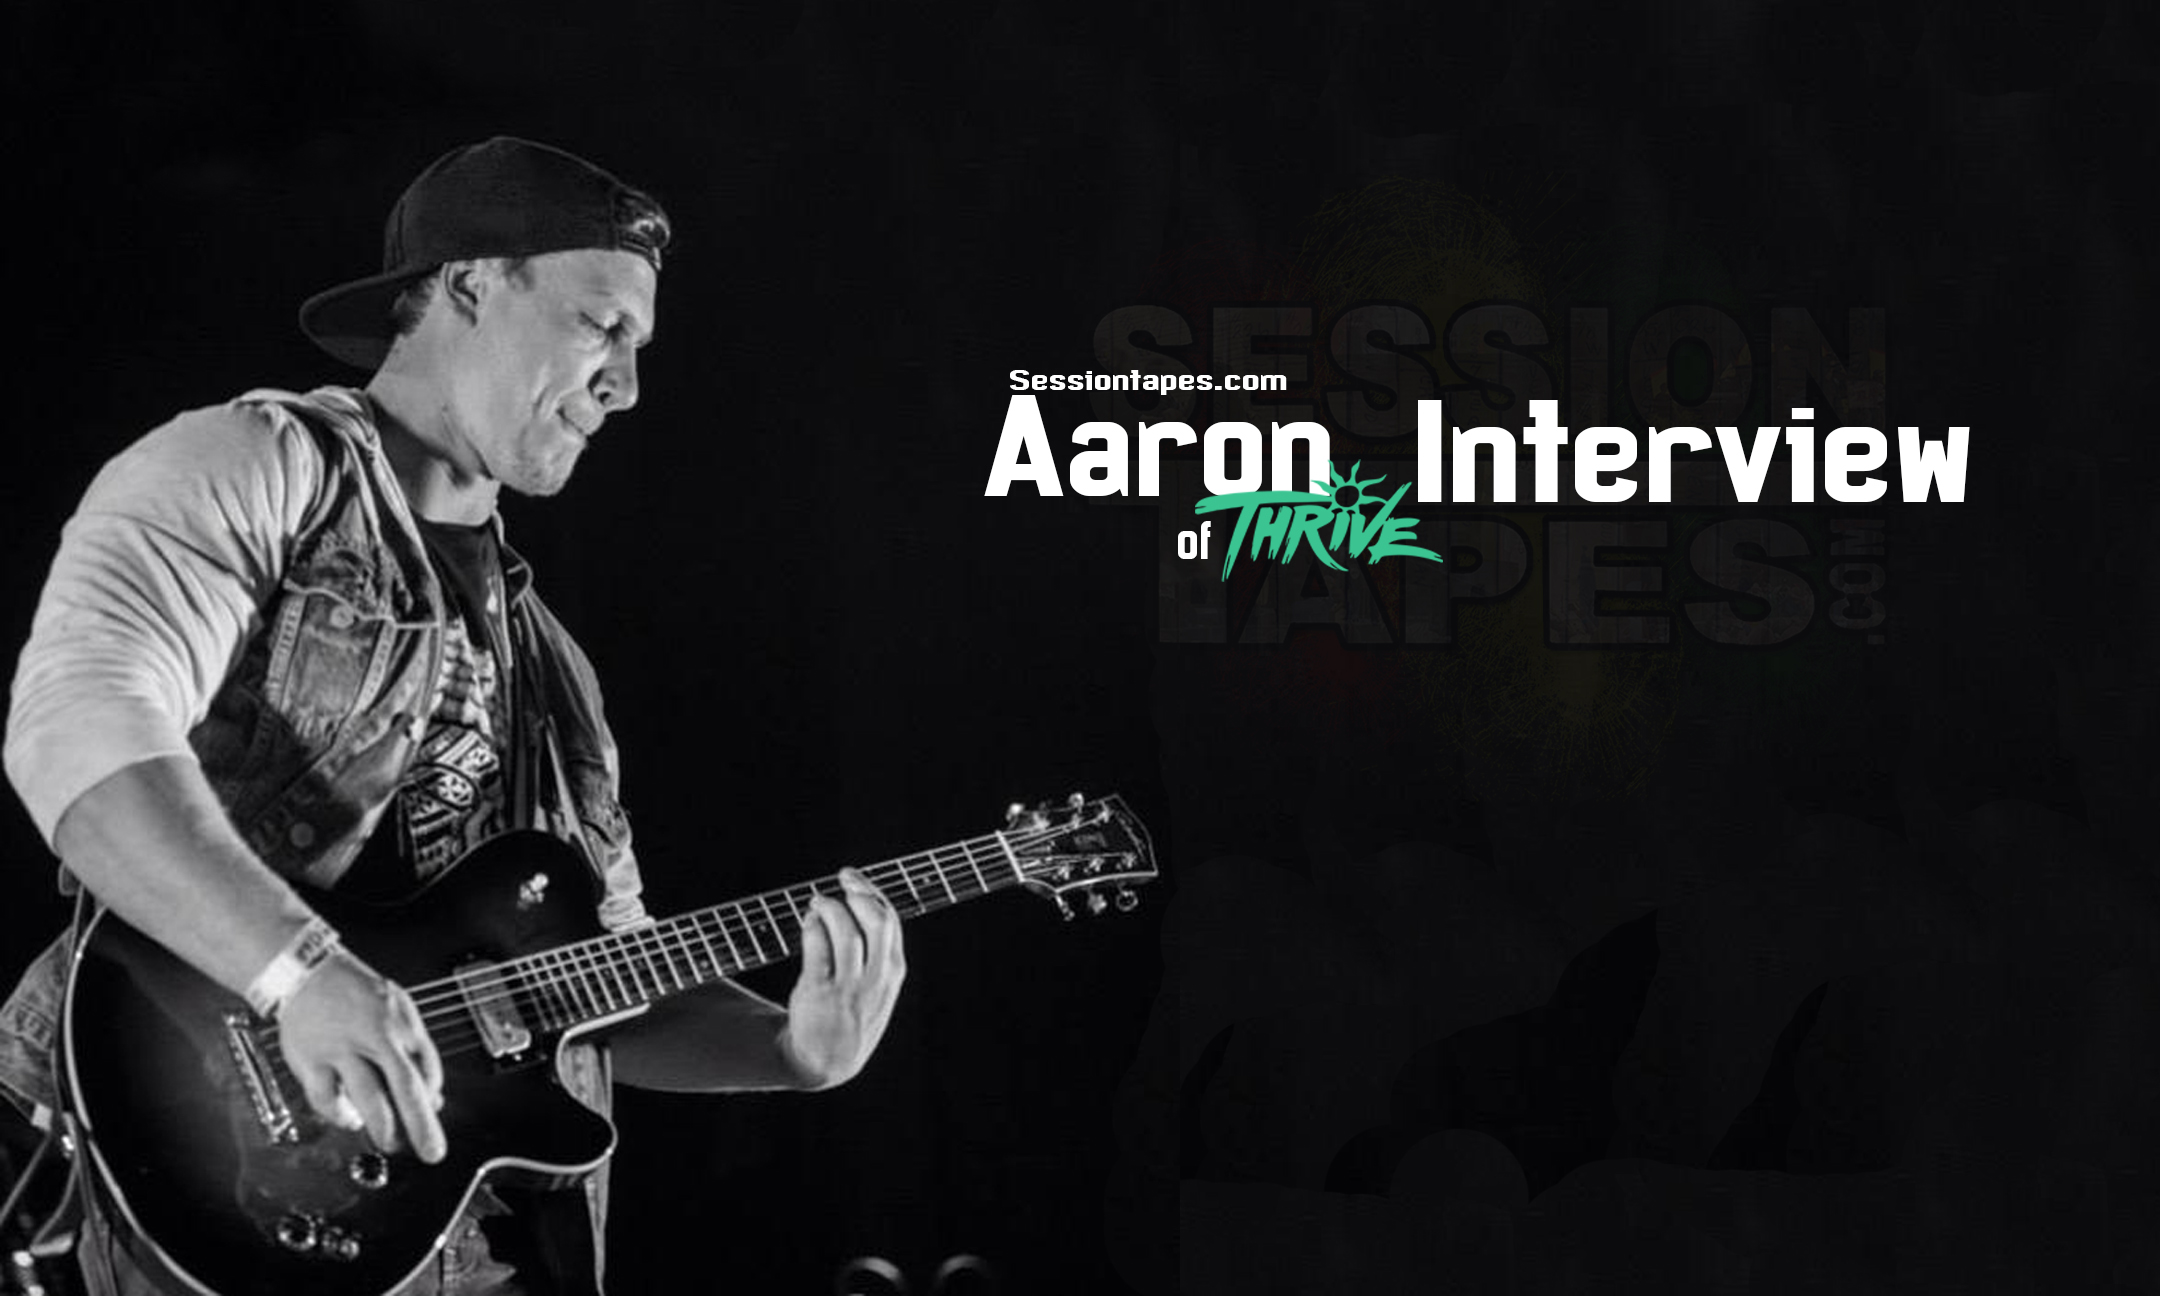 Aaron of Thrive Interview #Caliroots